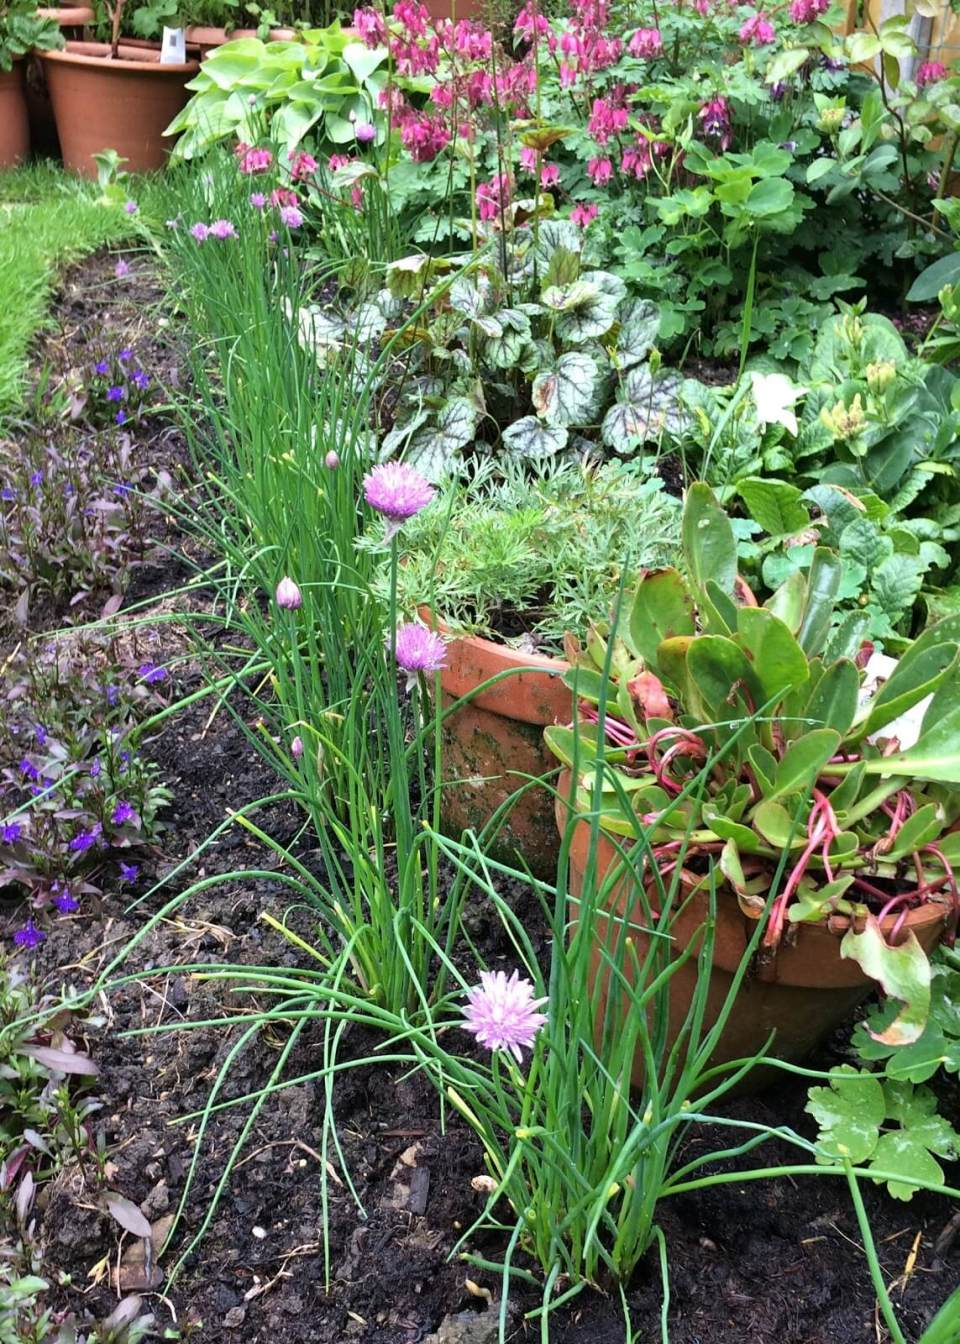 Onion Chives (Allium schoenoprasum) | How to Use Herbs as Edging